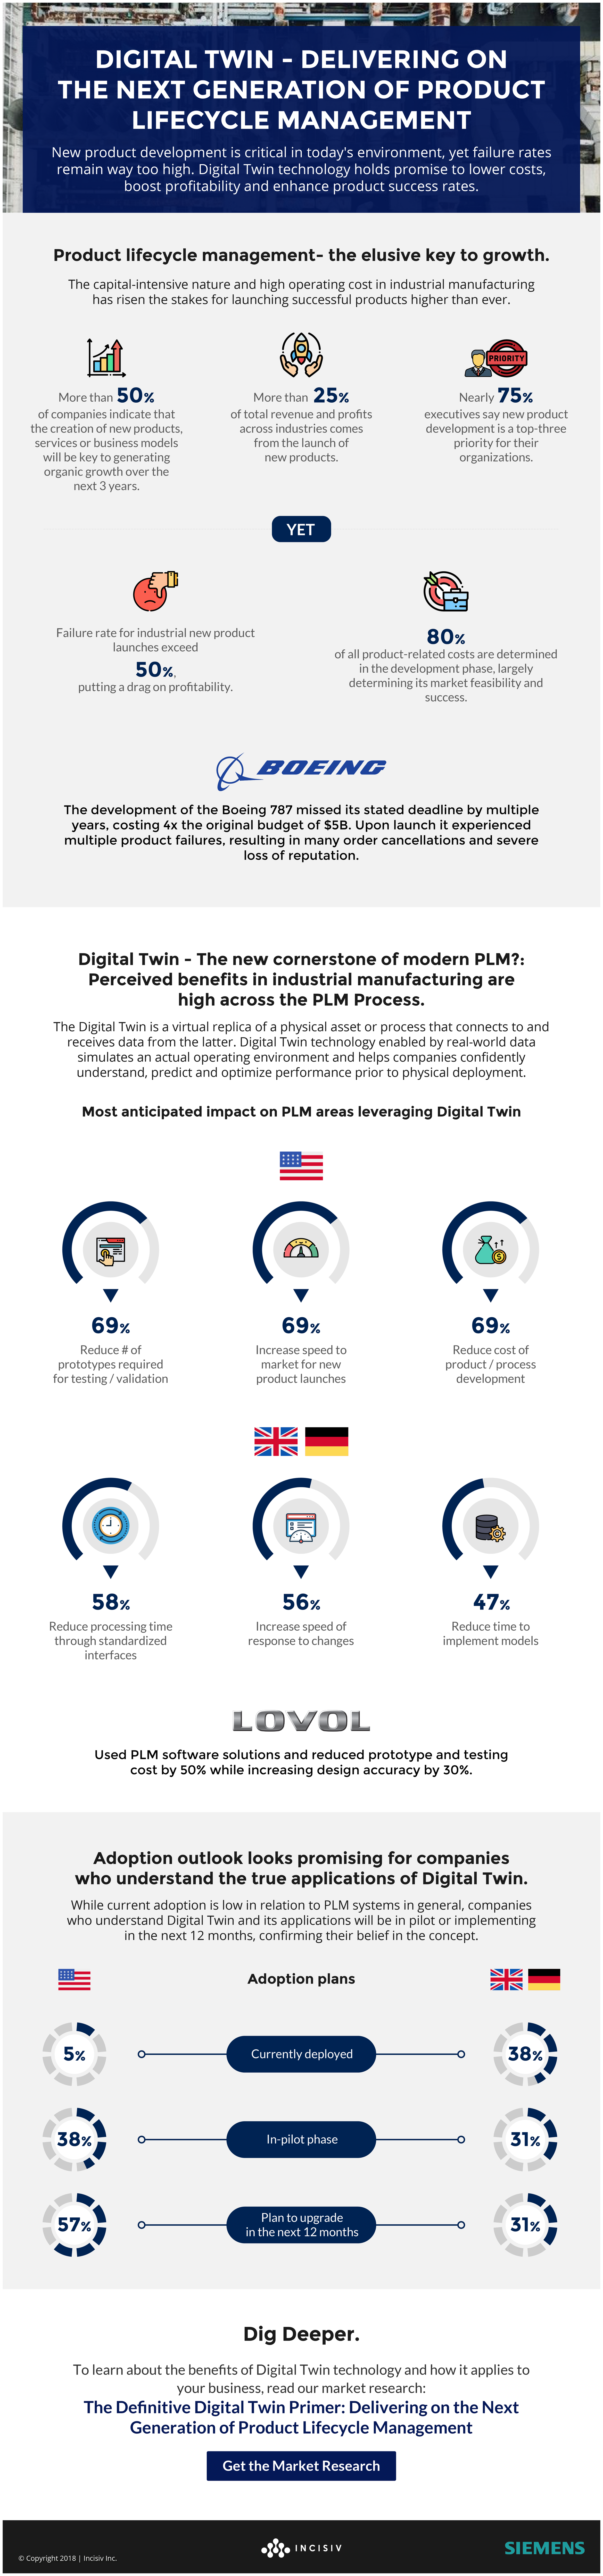 Digital Twin - Delivering on the Next Generation of Product Lifecycle Development, Infographic